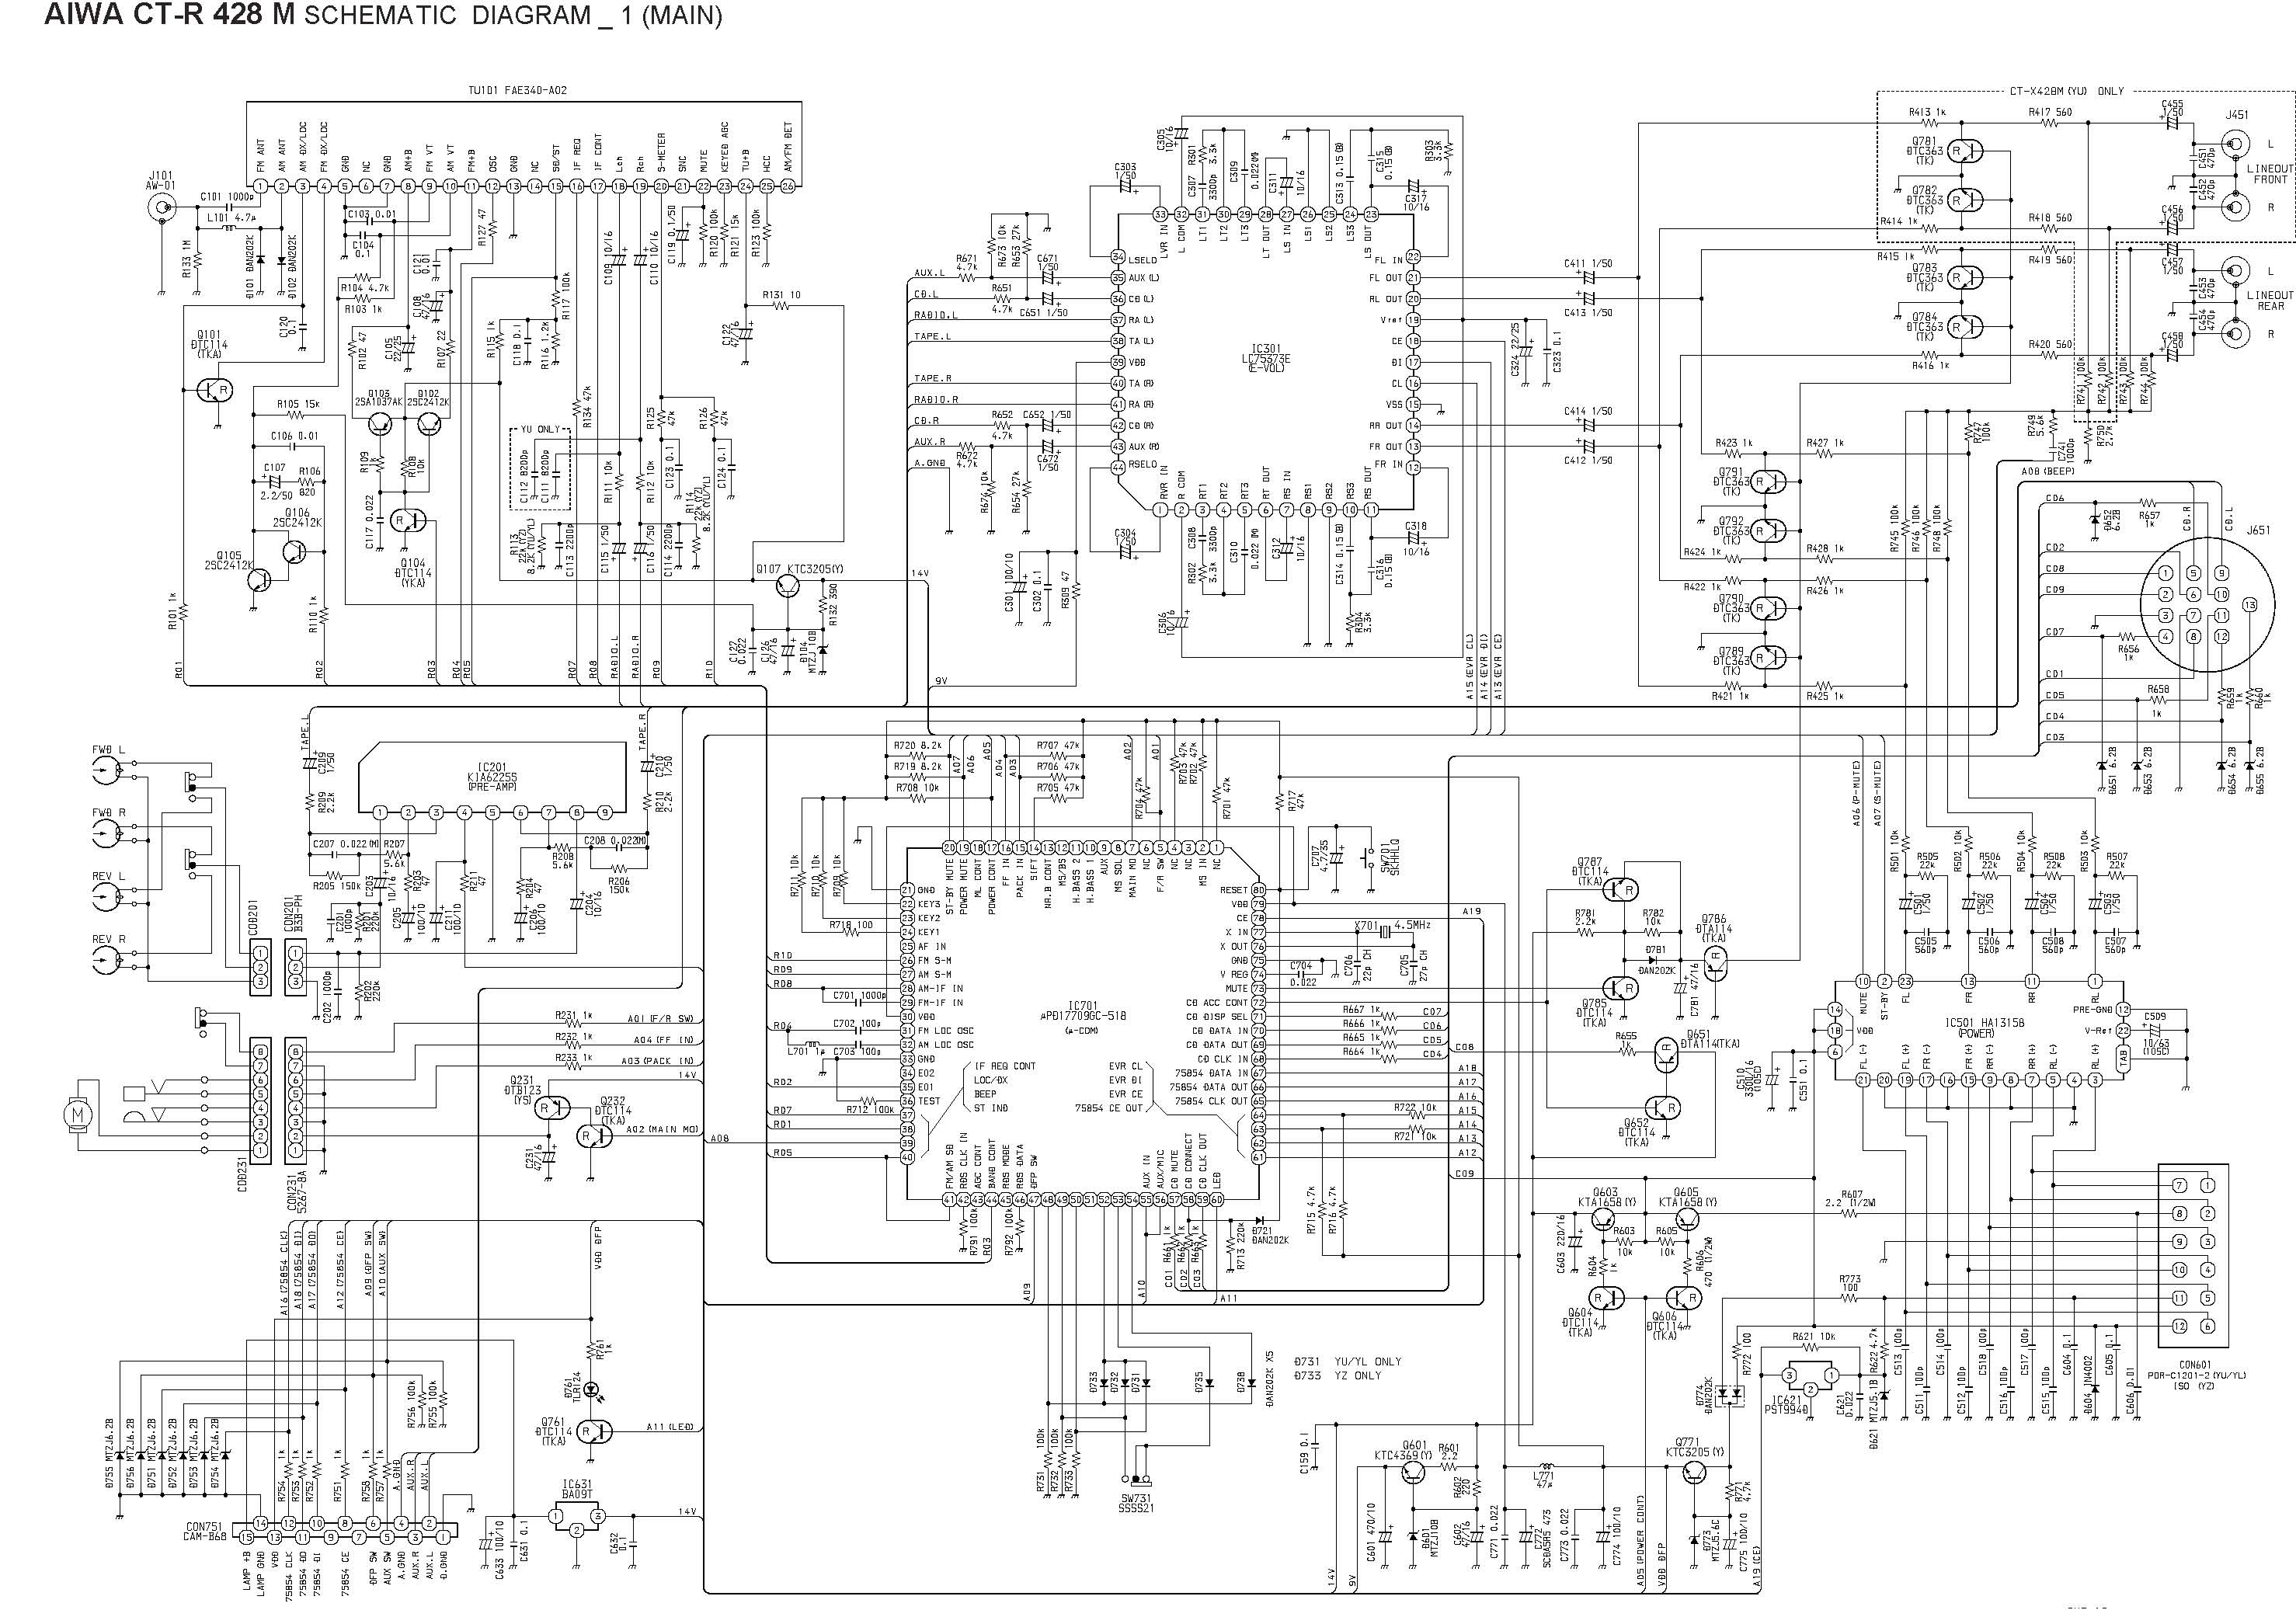 Aiwa CT-R 428 M Schematic Diagram (Main / Front) in PDF